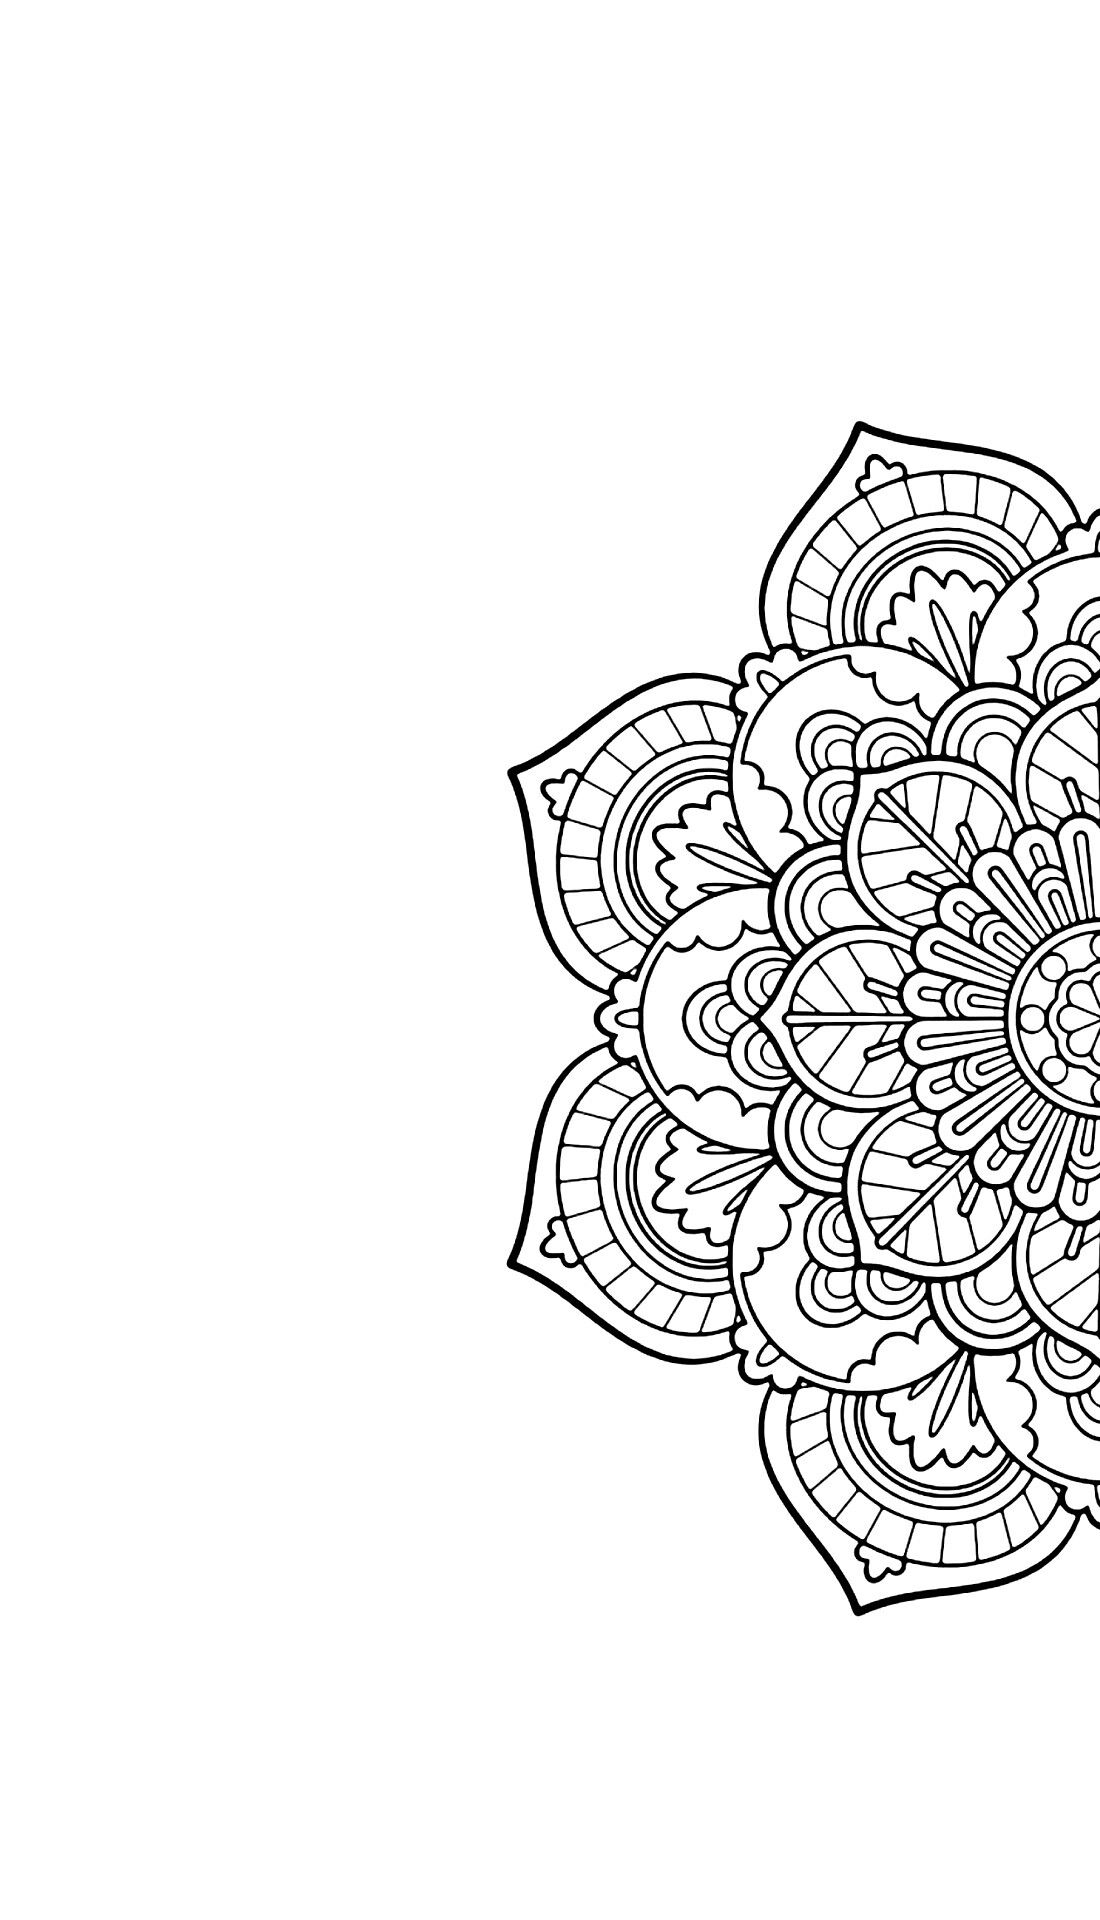 Mandala Phone Wallpaper Black And White Art Sfondi Sfondi Per